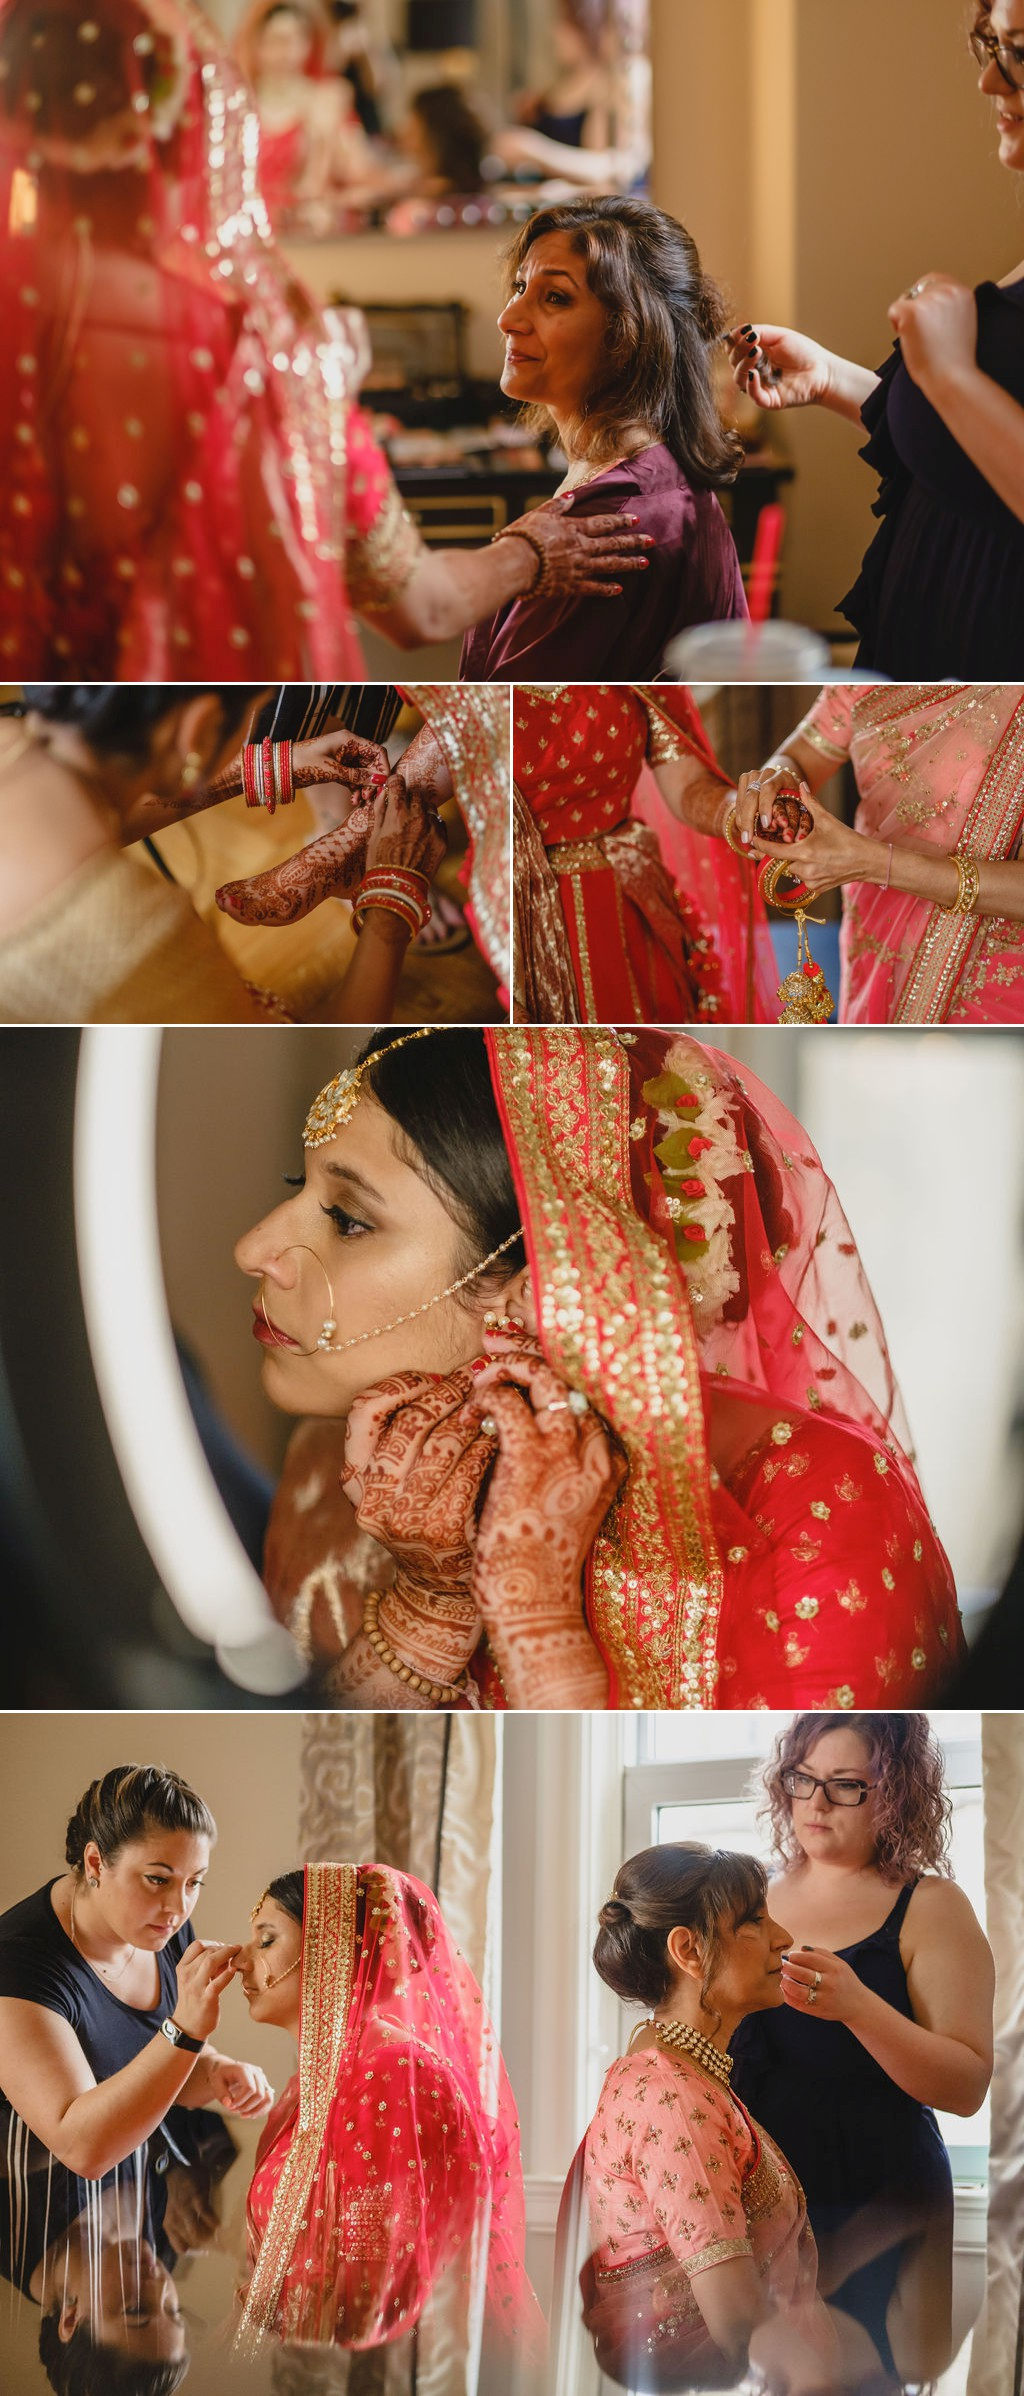 photographs of an indian bride getting ready for her wedding at the chateau laurier in ottawa